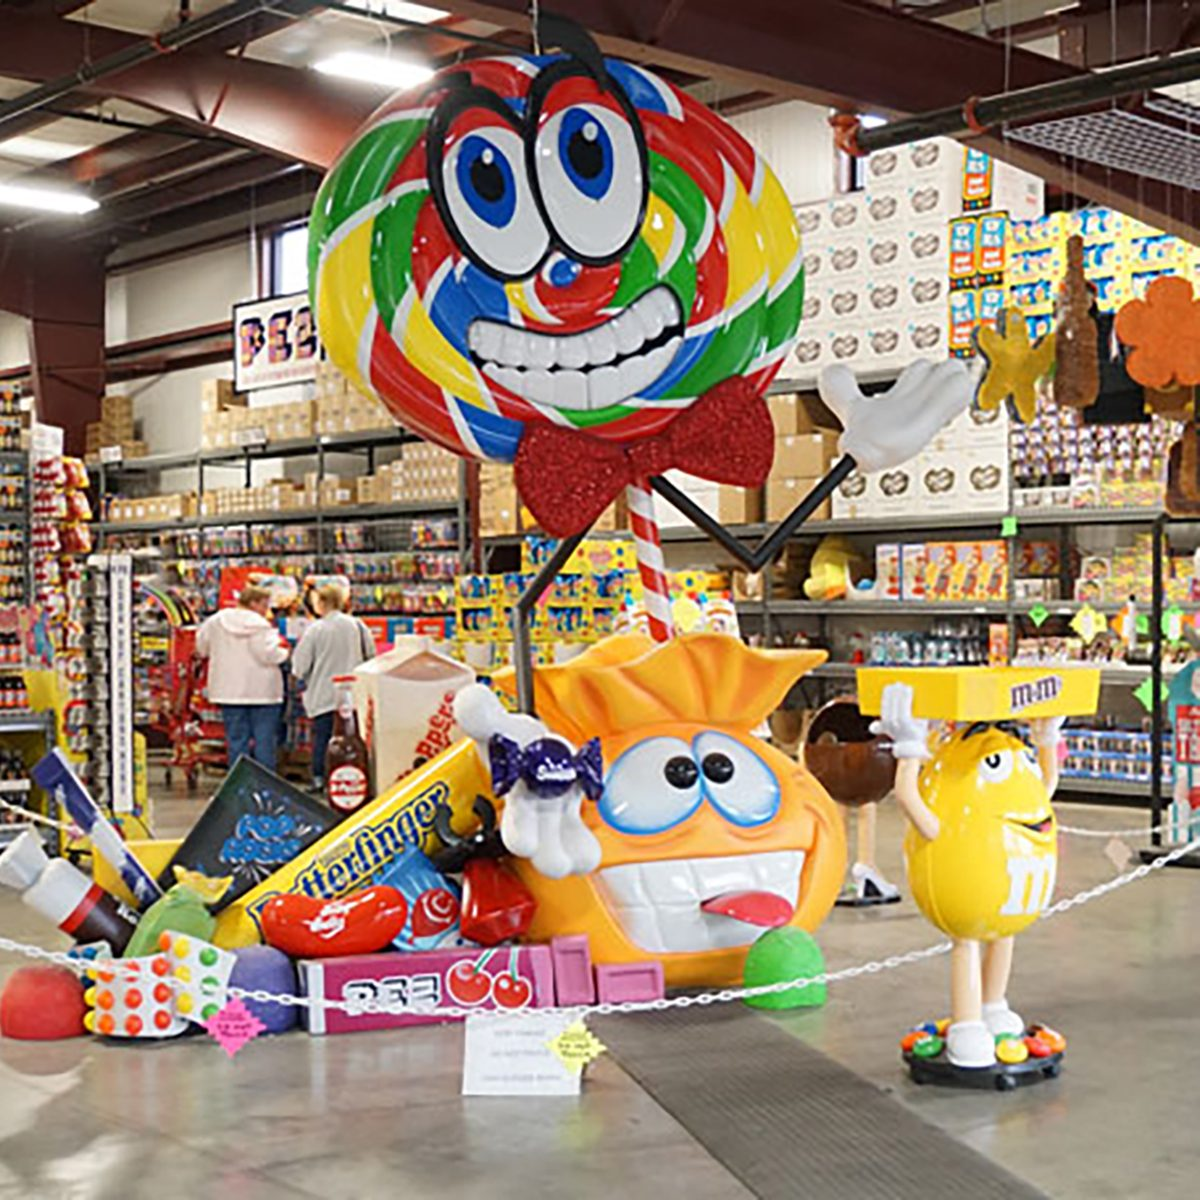 b.a. Sweetie Candy Company, The best candy shop in every state